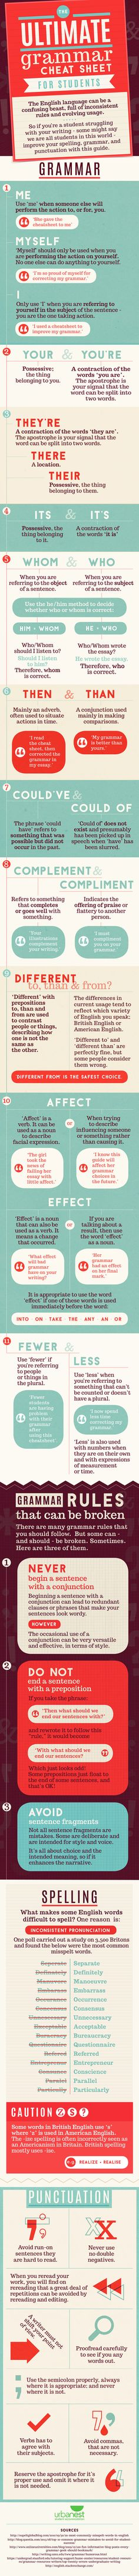 Infographic: The ultimate English grammar cheat sheet - Matador Network